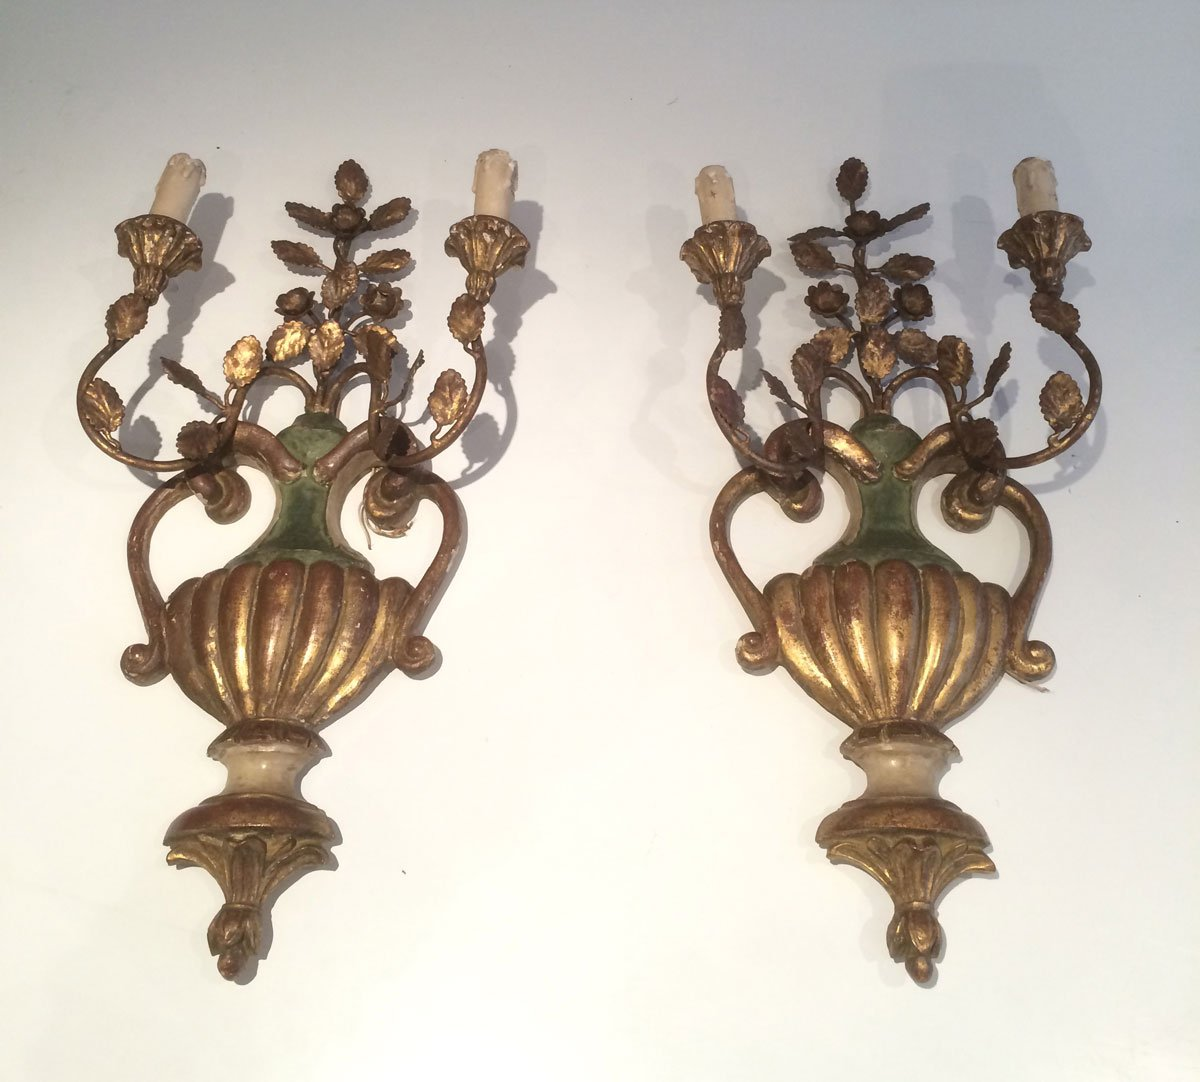 Vintage Gilded Italian Carved Wood Sconces, Set of 2 for sale at Pamono